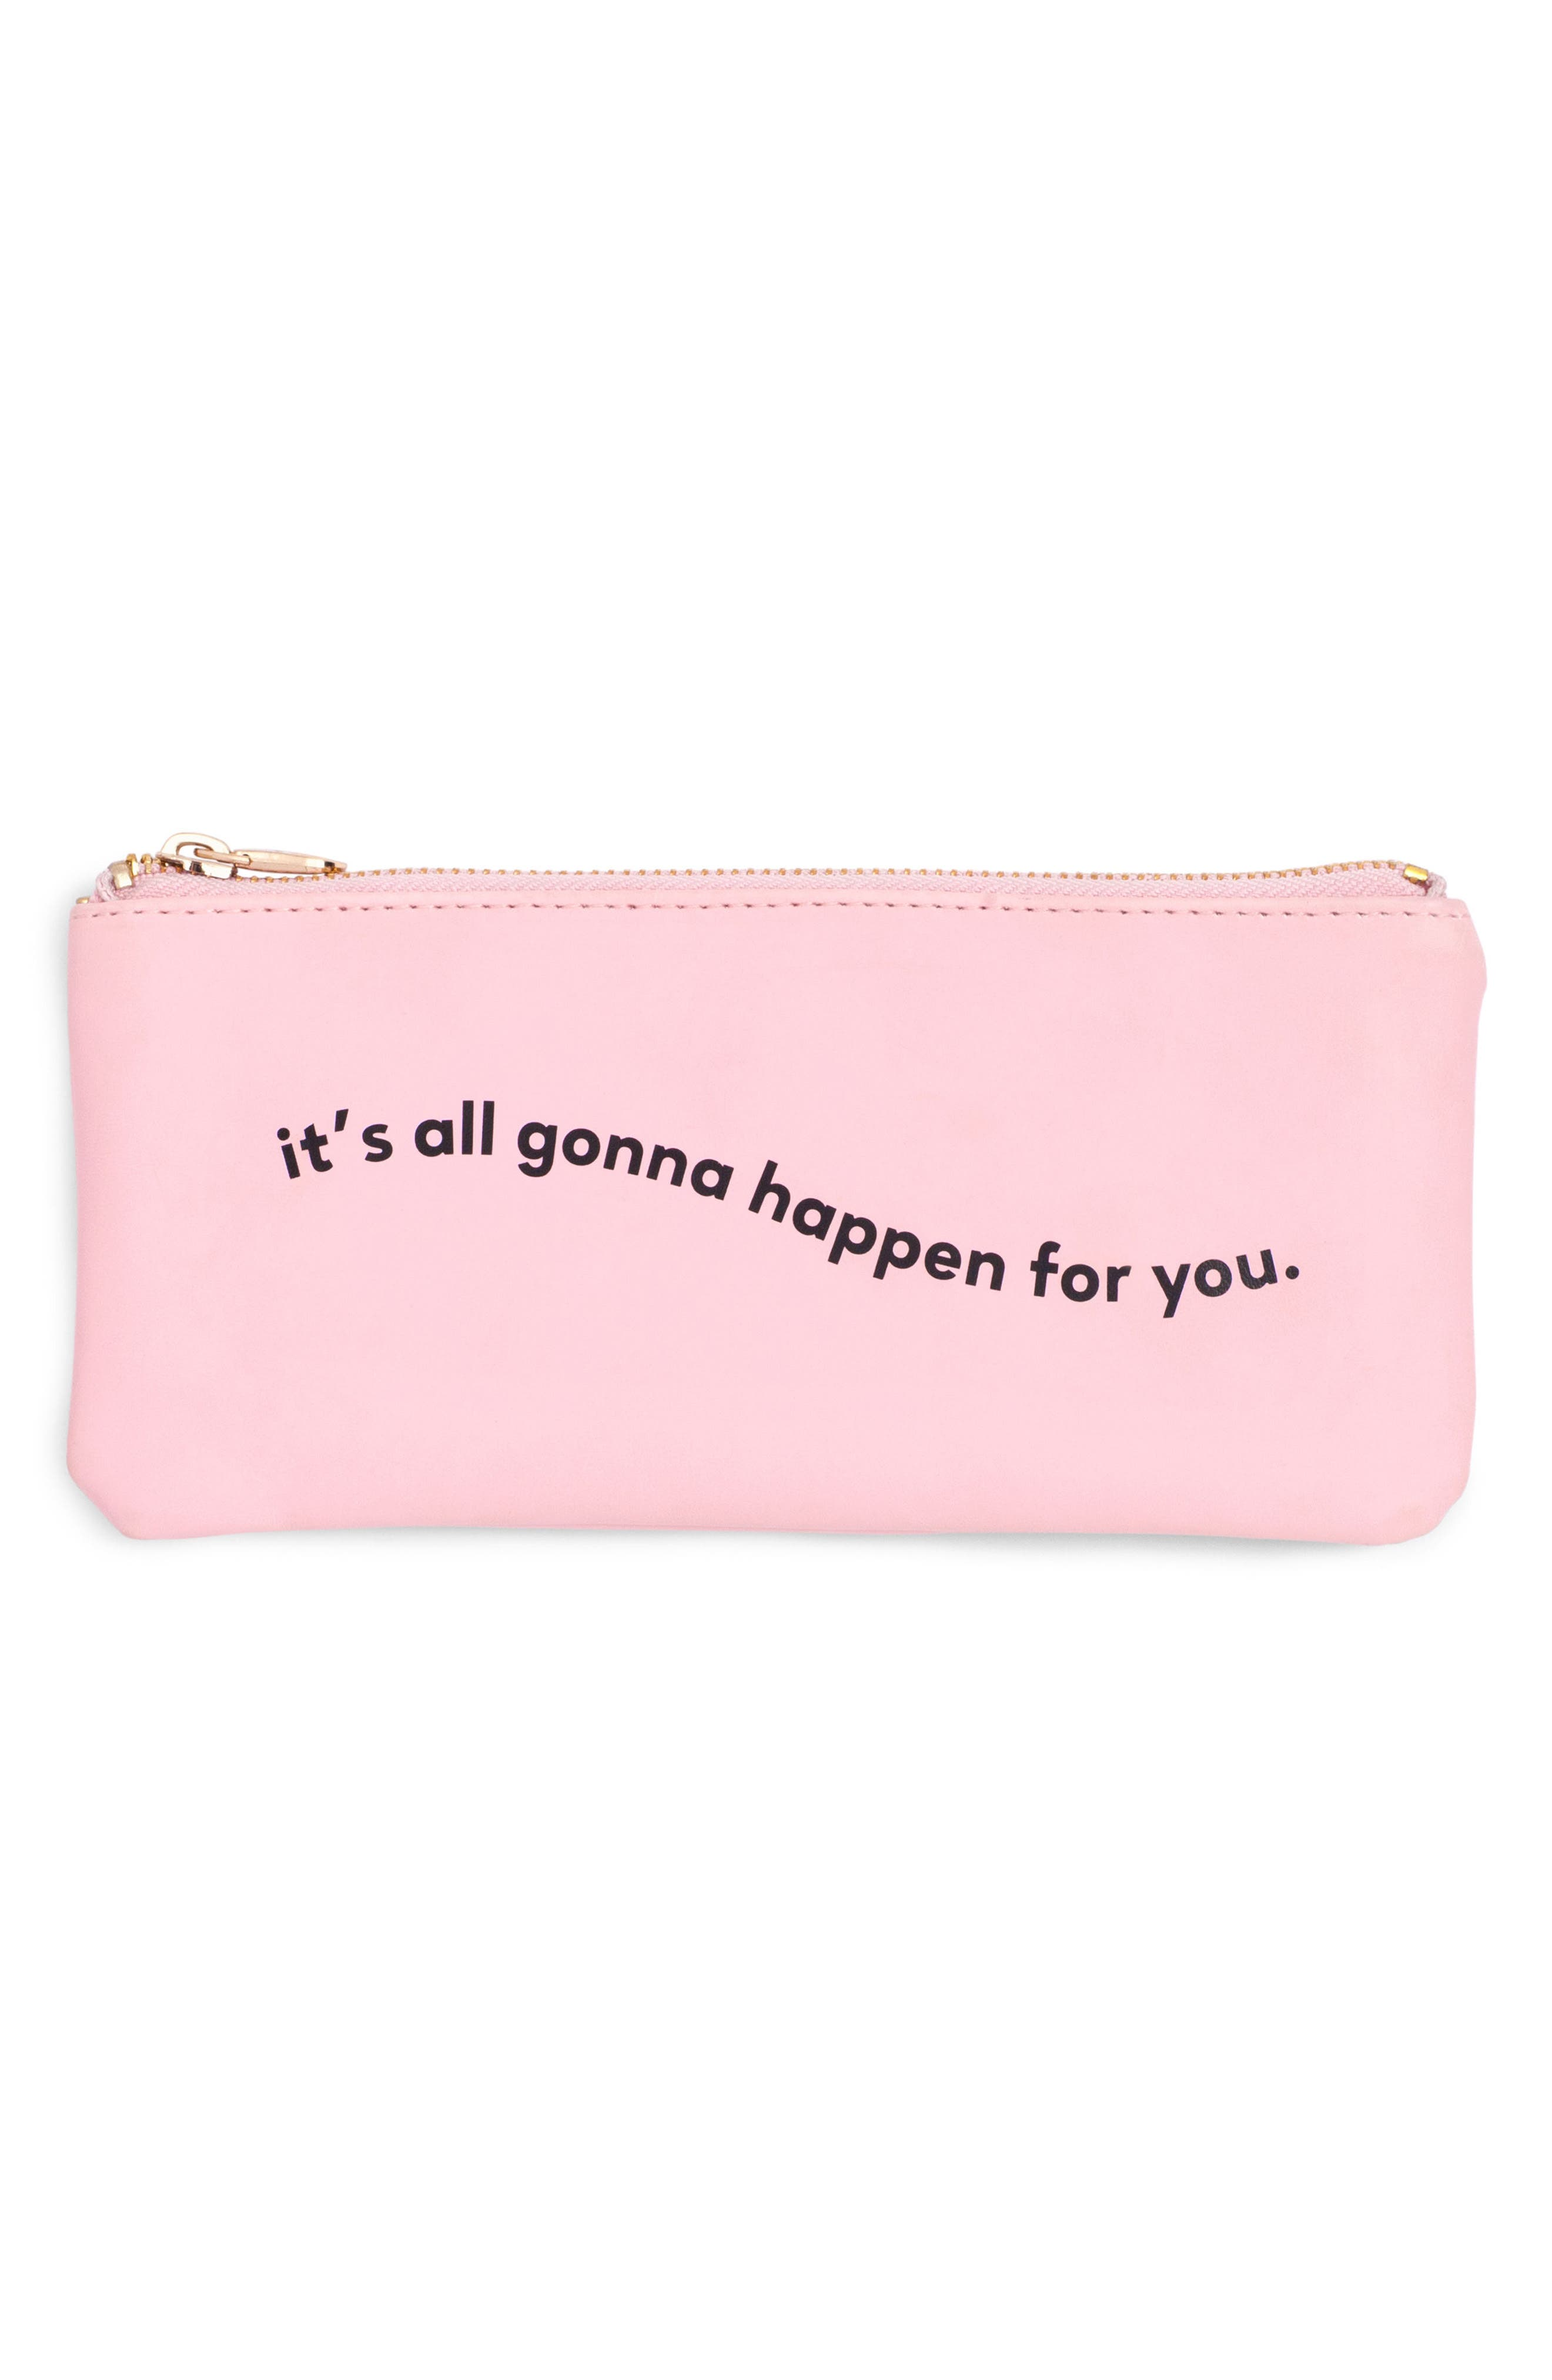 It's All Gonna Happen Pencil Pouch,                         Main,                         color, Its All Gonna Happen